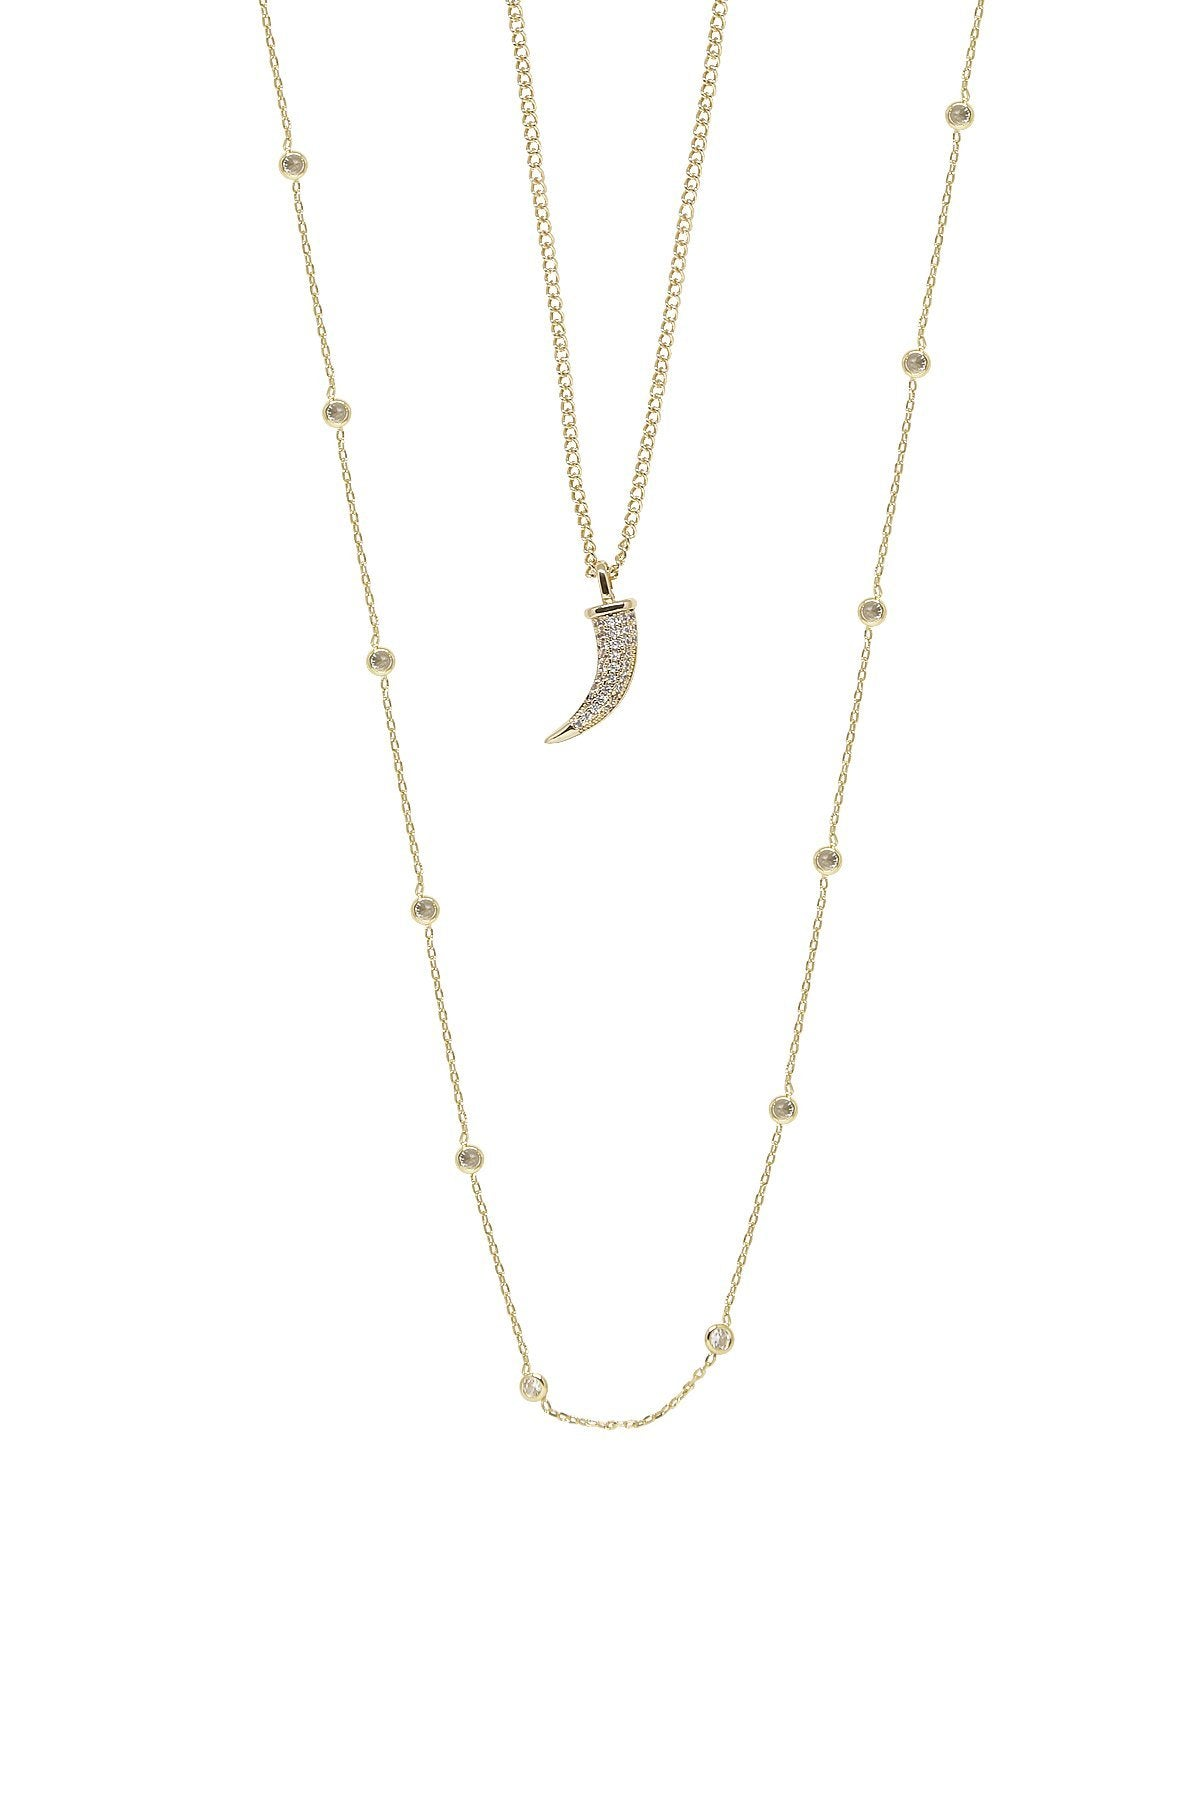 Easy Essential Horn and Delicate Chain Layered Necklace